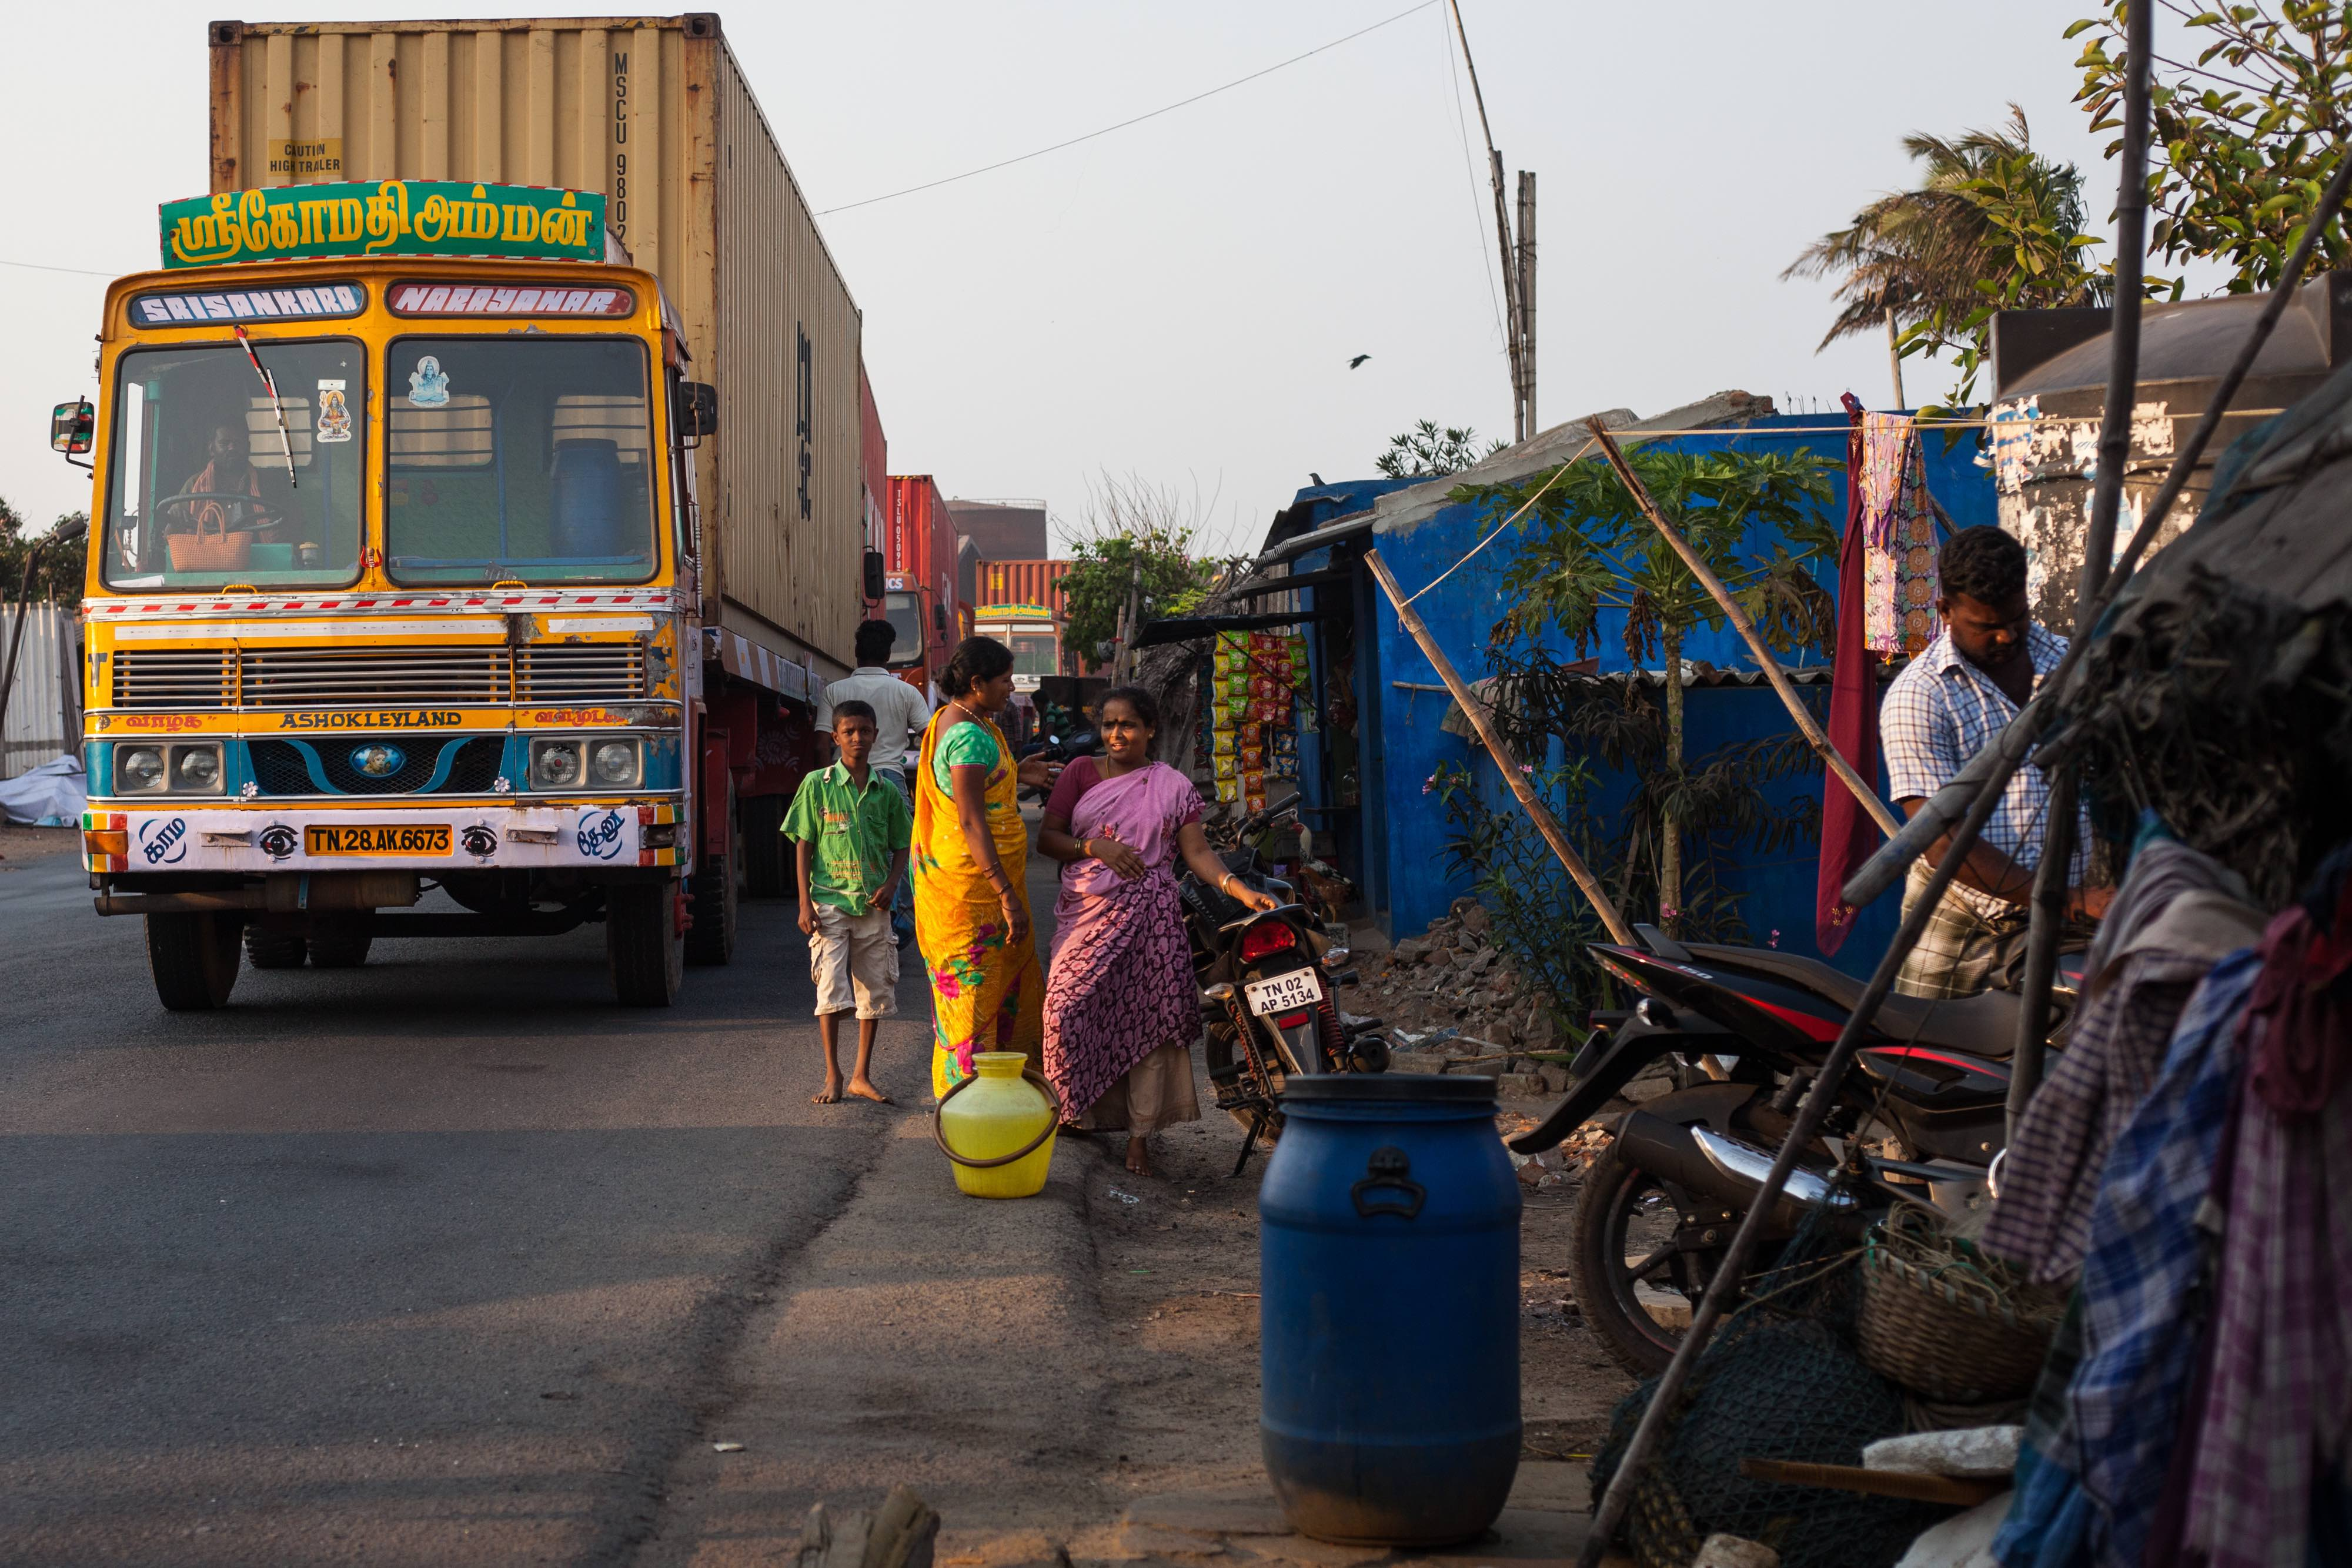 Residents of NTO Kuppam, Chennai, have tried to adapt to the increasing encroachment of heavy industry and traffic on their village. Credit: Greg McNevin, Unmask My City